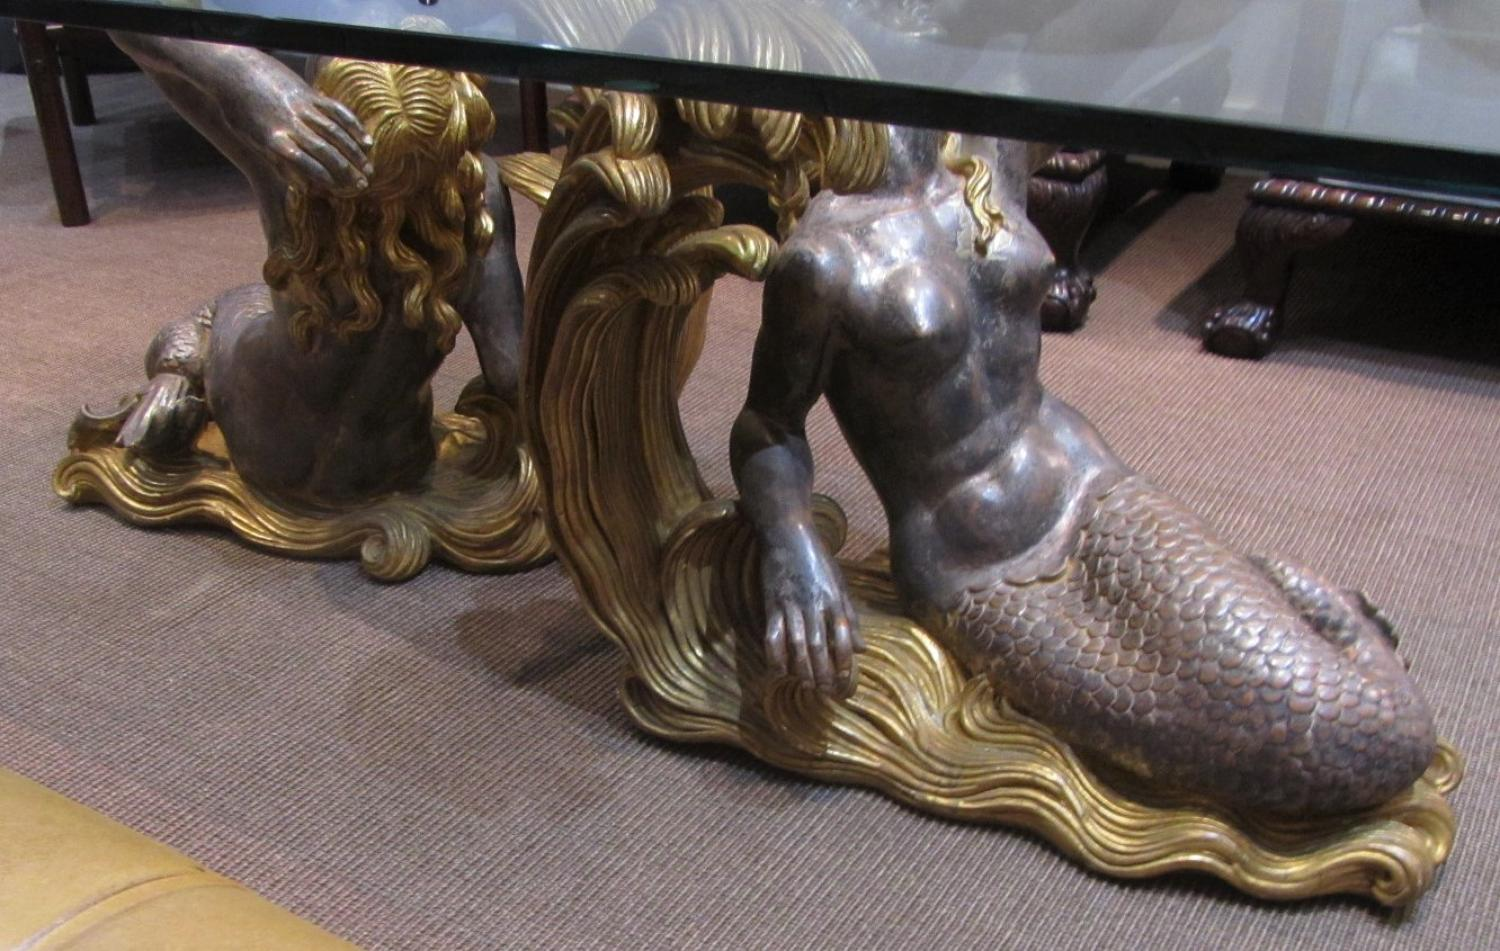 A mid century mermaid coffee table 10462 pic9 size3 interior boutiques antiques for sale and Mermaid coffee table